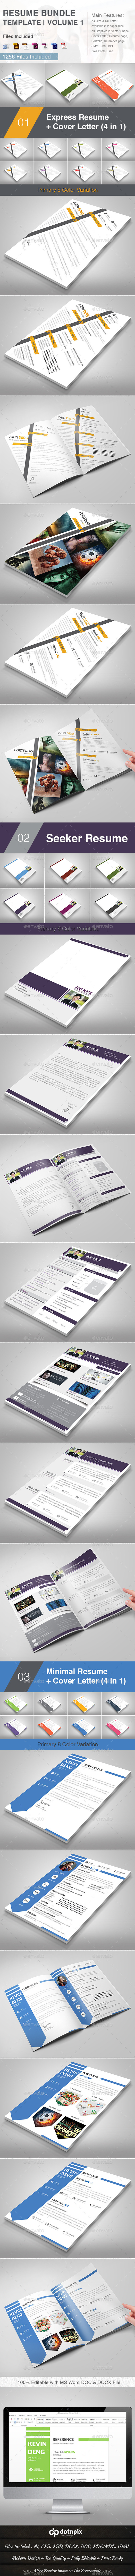 GraphicRiver Resume Bundle Template Volume 1 10700416